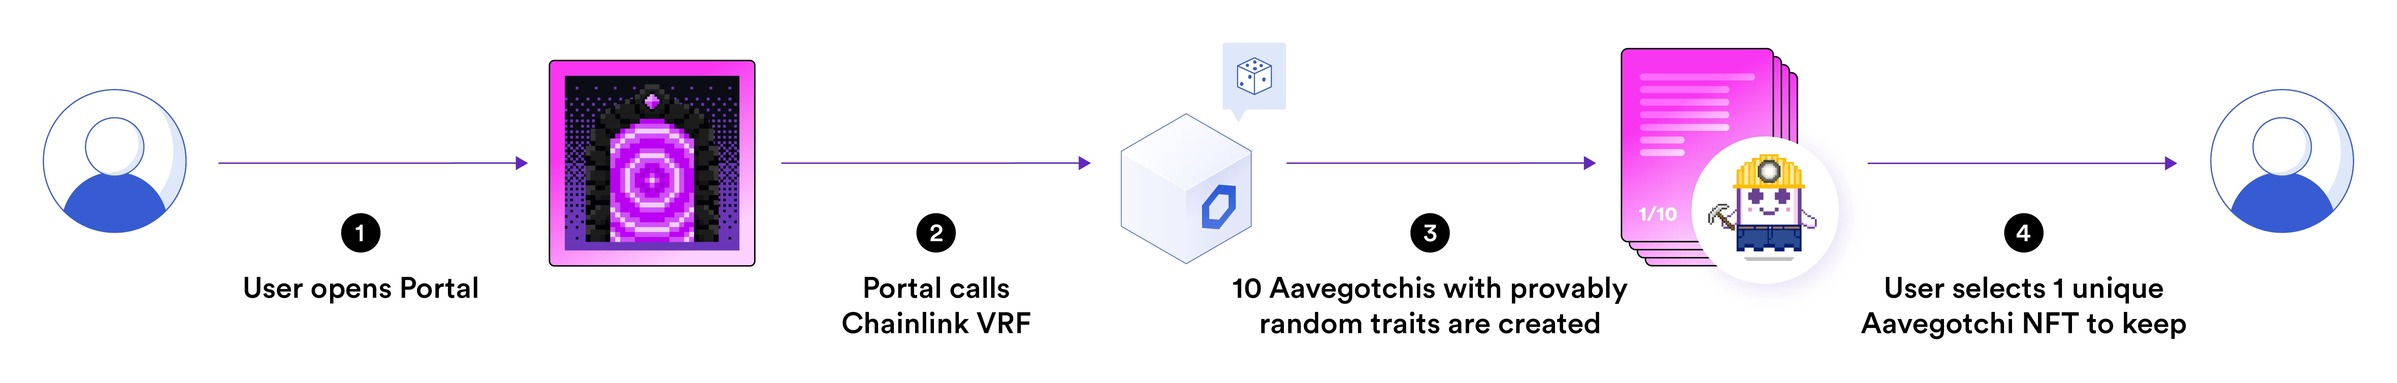 Chainlink VRF powers Aavegotchi with verifiable randomness